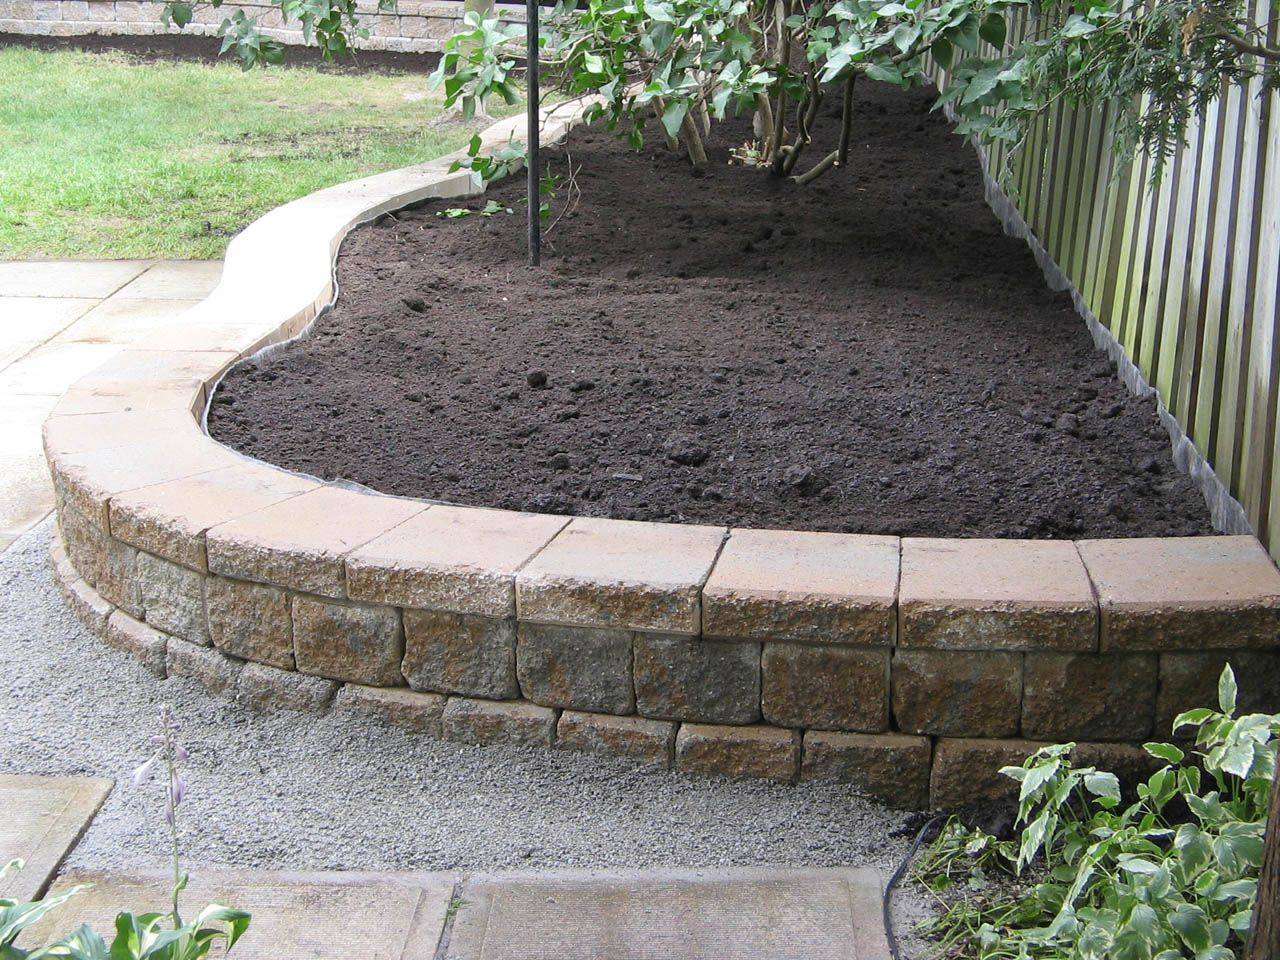 retaining wall ideas retaining wall about 2ft high on retaining wall id=41124